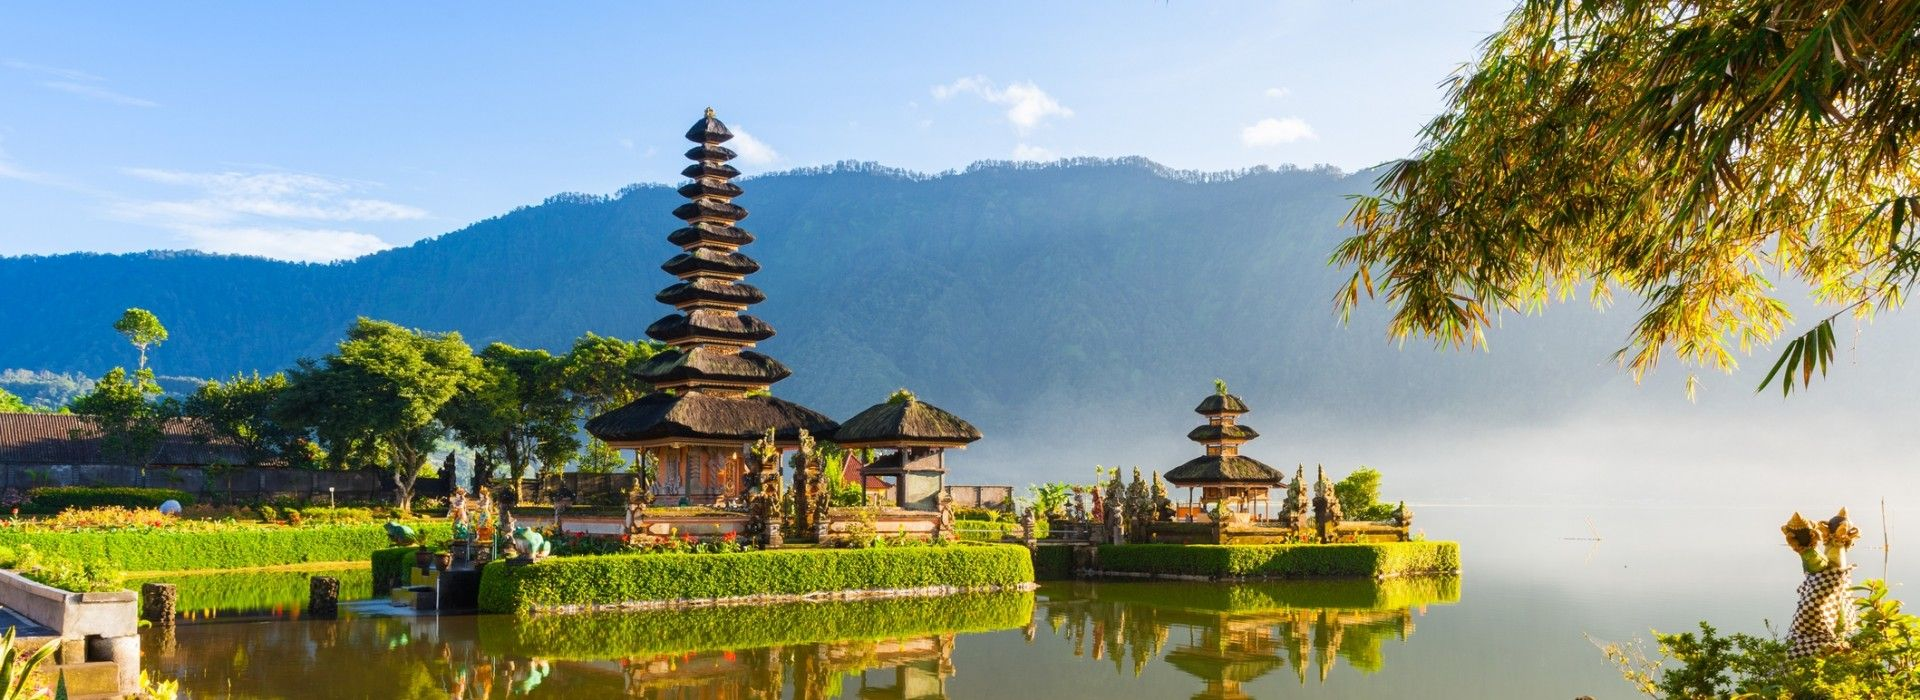 Natural landmarks sightseeing Tours in Indonesia